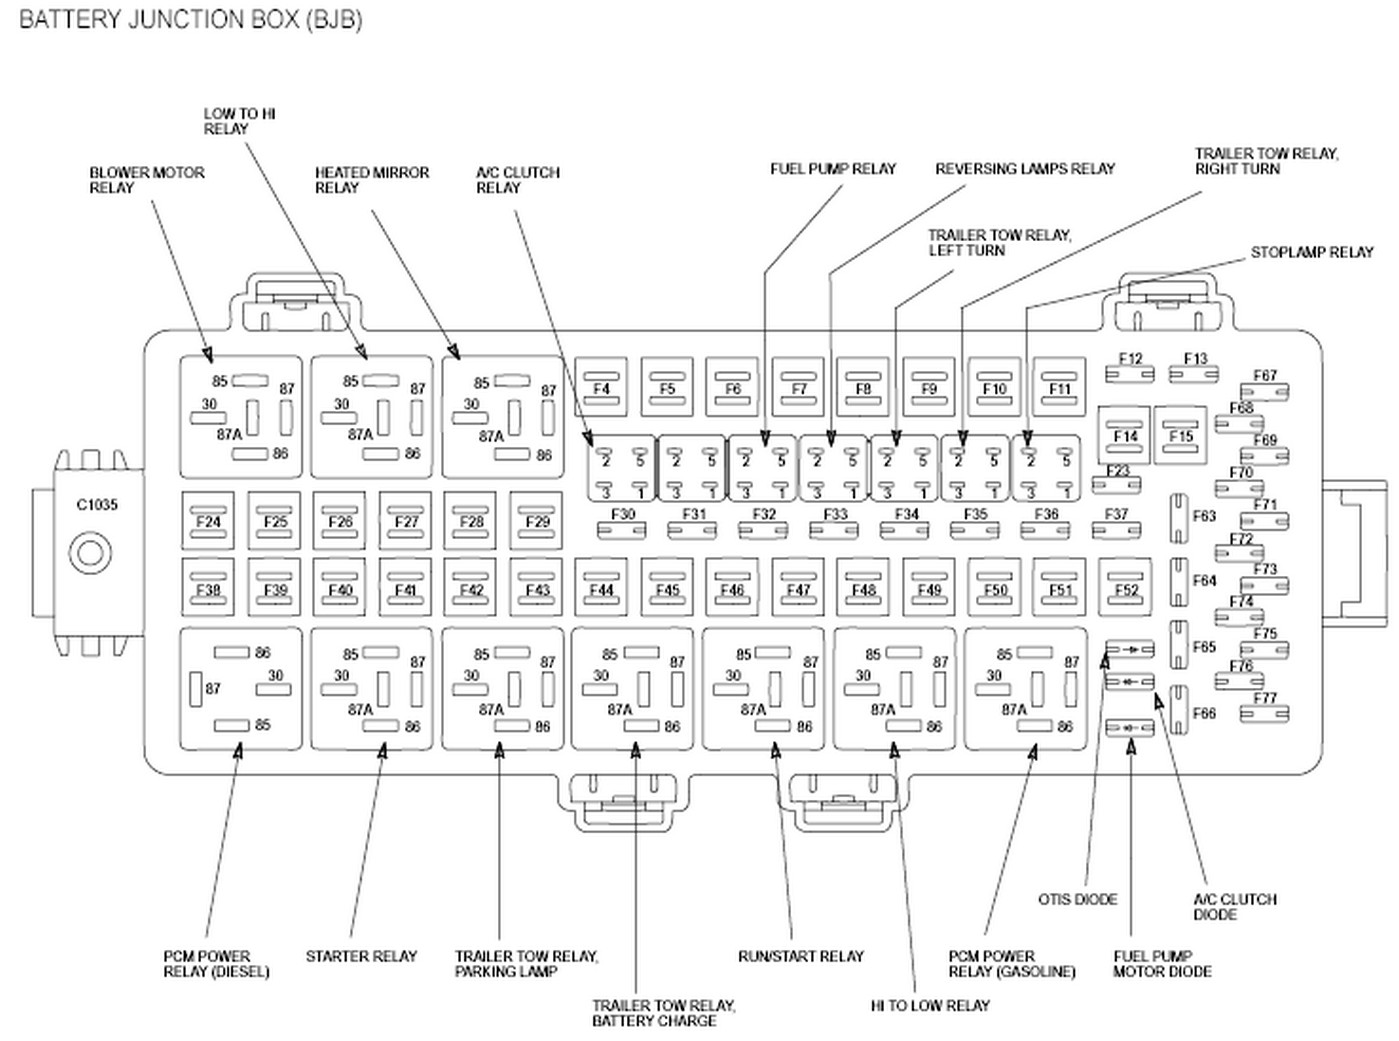 2011 ford f250 fuse box diagram Zoinyhu 2012 f250 fuse box location 2009 ford fusion fuse box diagram 1997 f350 fuse box diagram under the hood at honlapkeszites.co